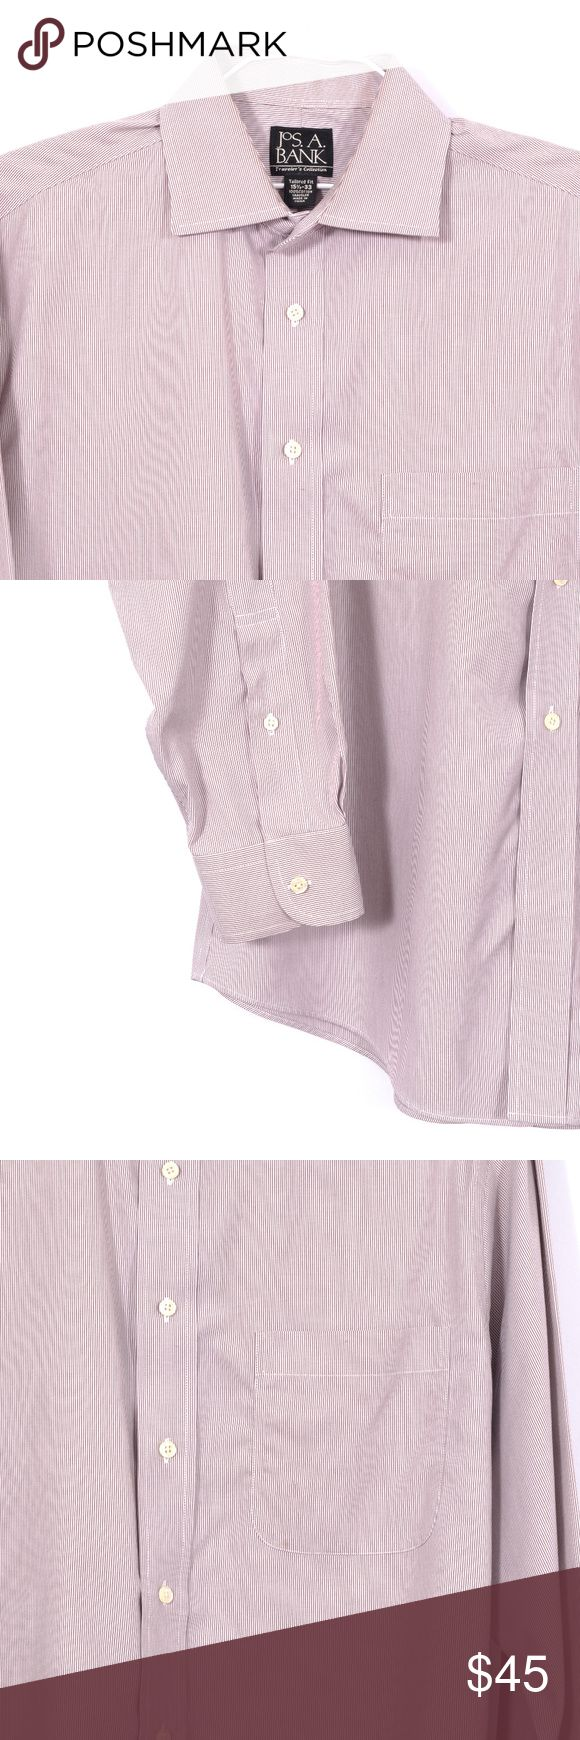 Jos. A. Bank Shirt Size 15 1/2 33 00290 (With images